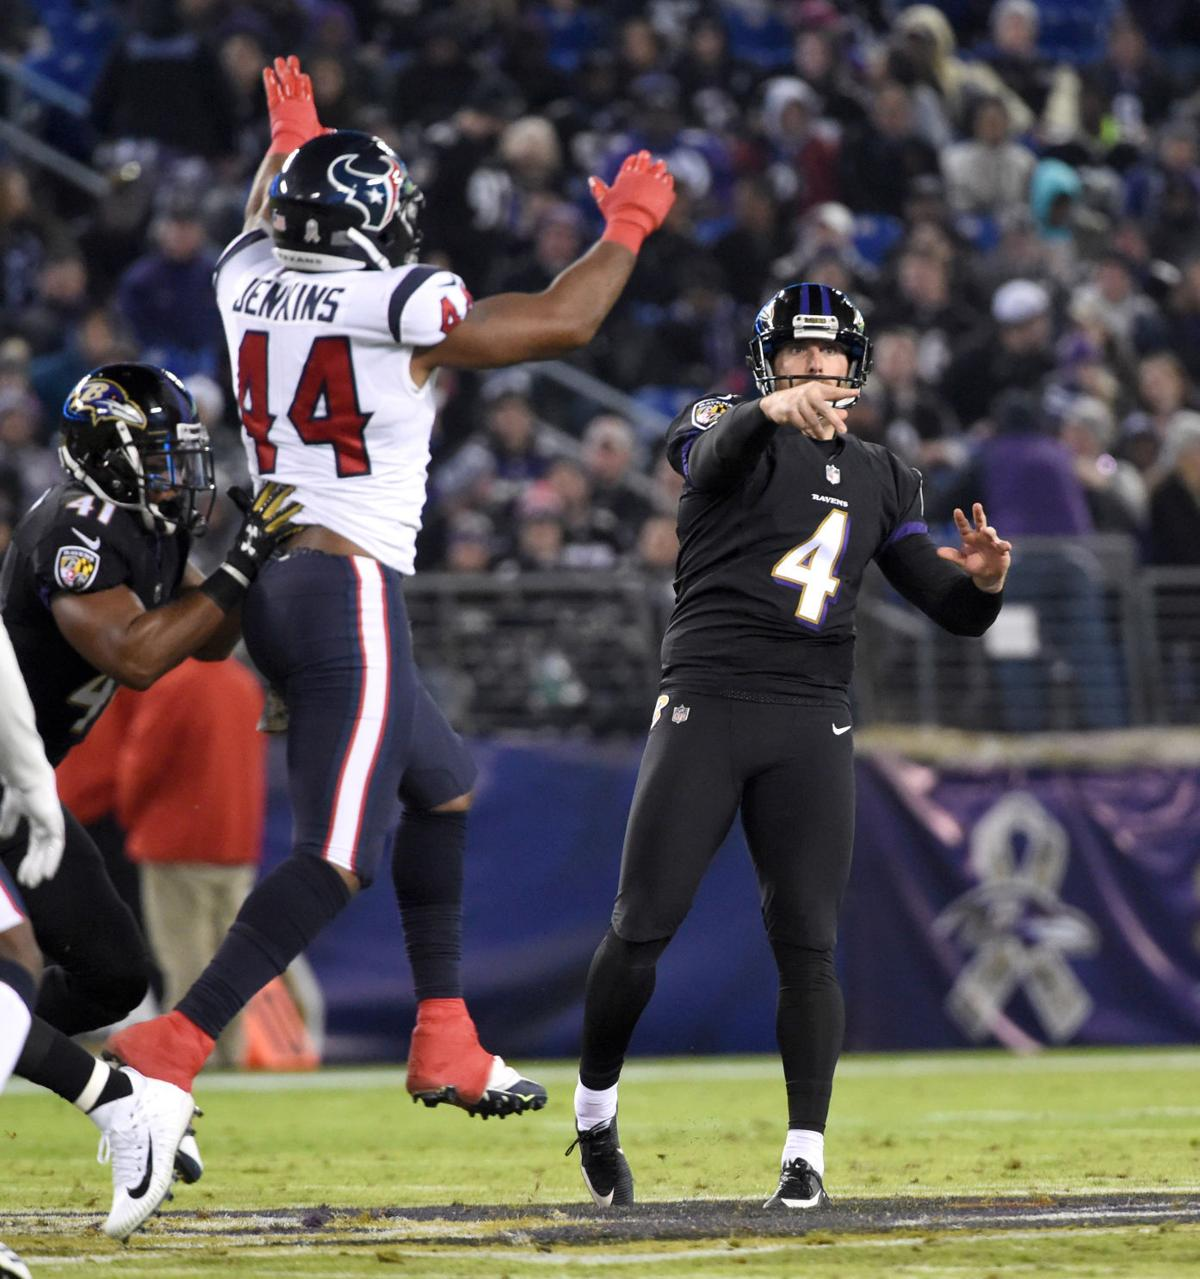 baltimore ravens sam koch 4 throws a pass for a first down after the ravens faked a punt in the second quarter against the houston texans on monday at